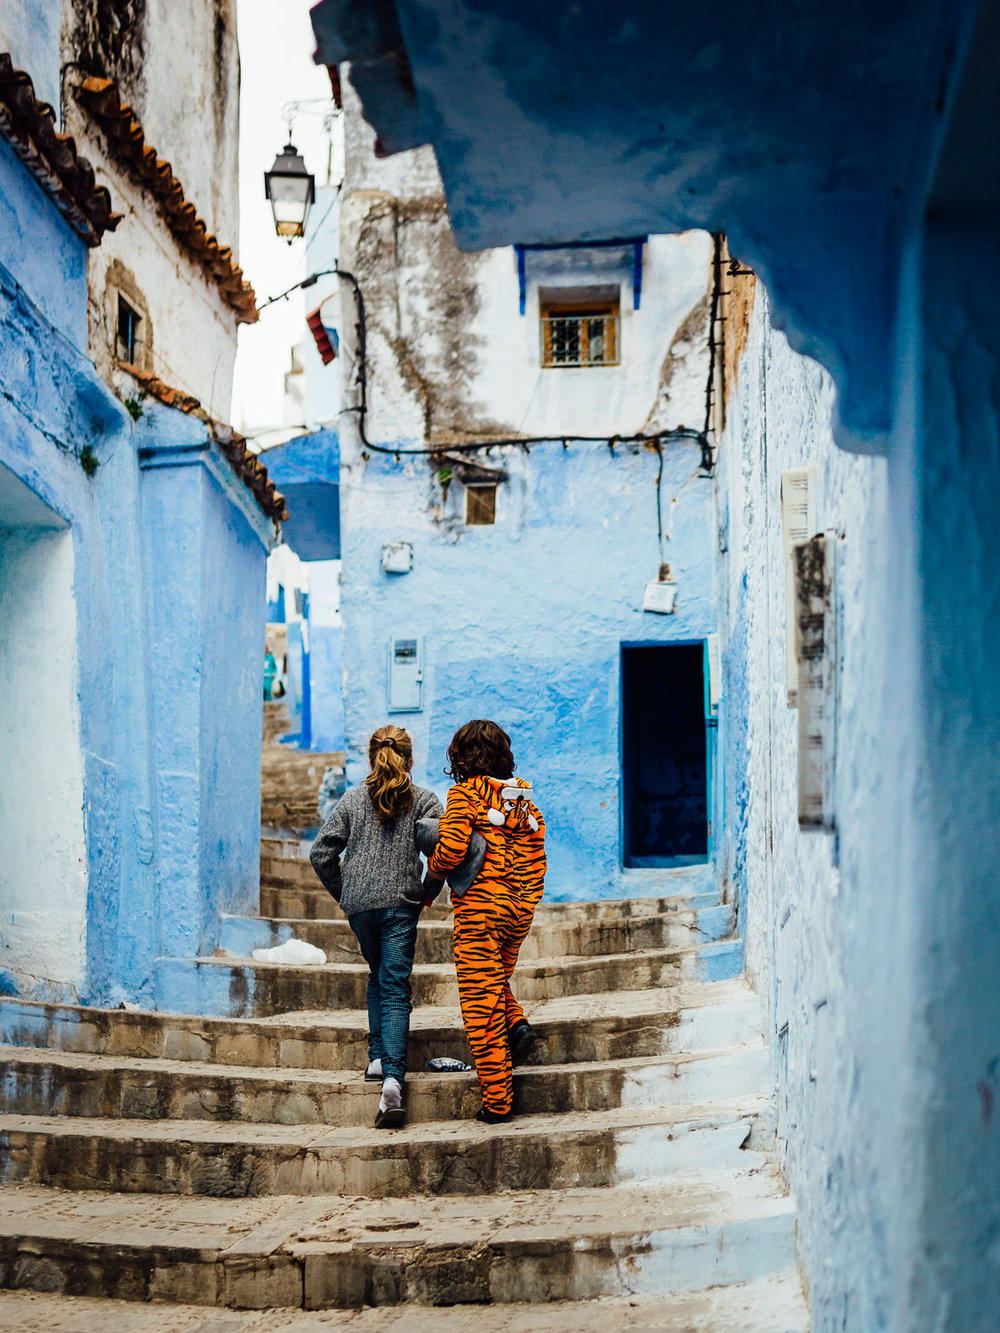 Blue-Morocco-Kids-Children-Friendship-Durazo-Photography-Project-Travel-Street